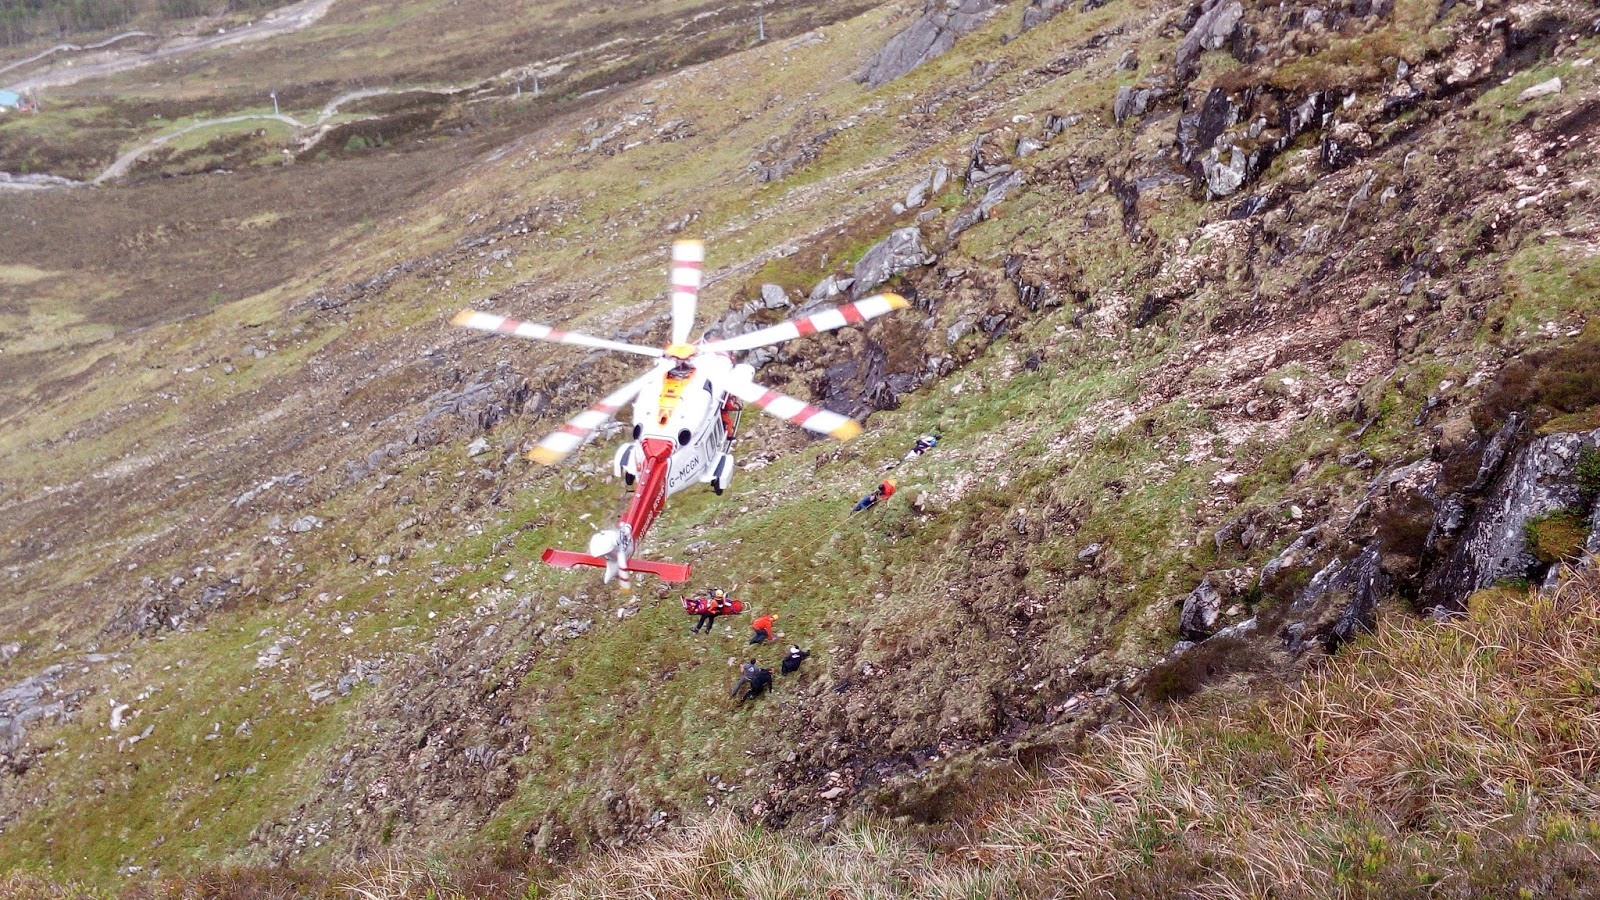 The rescue of a paraglider in Lochaber